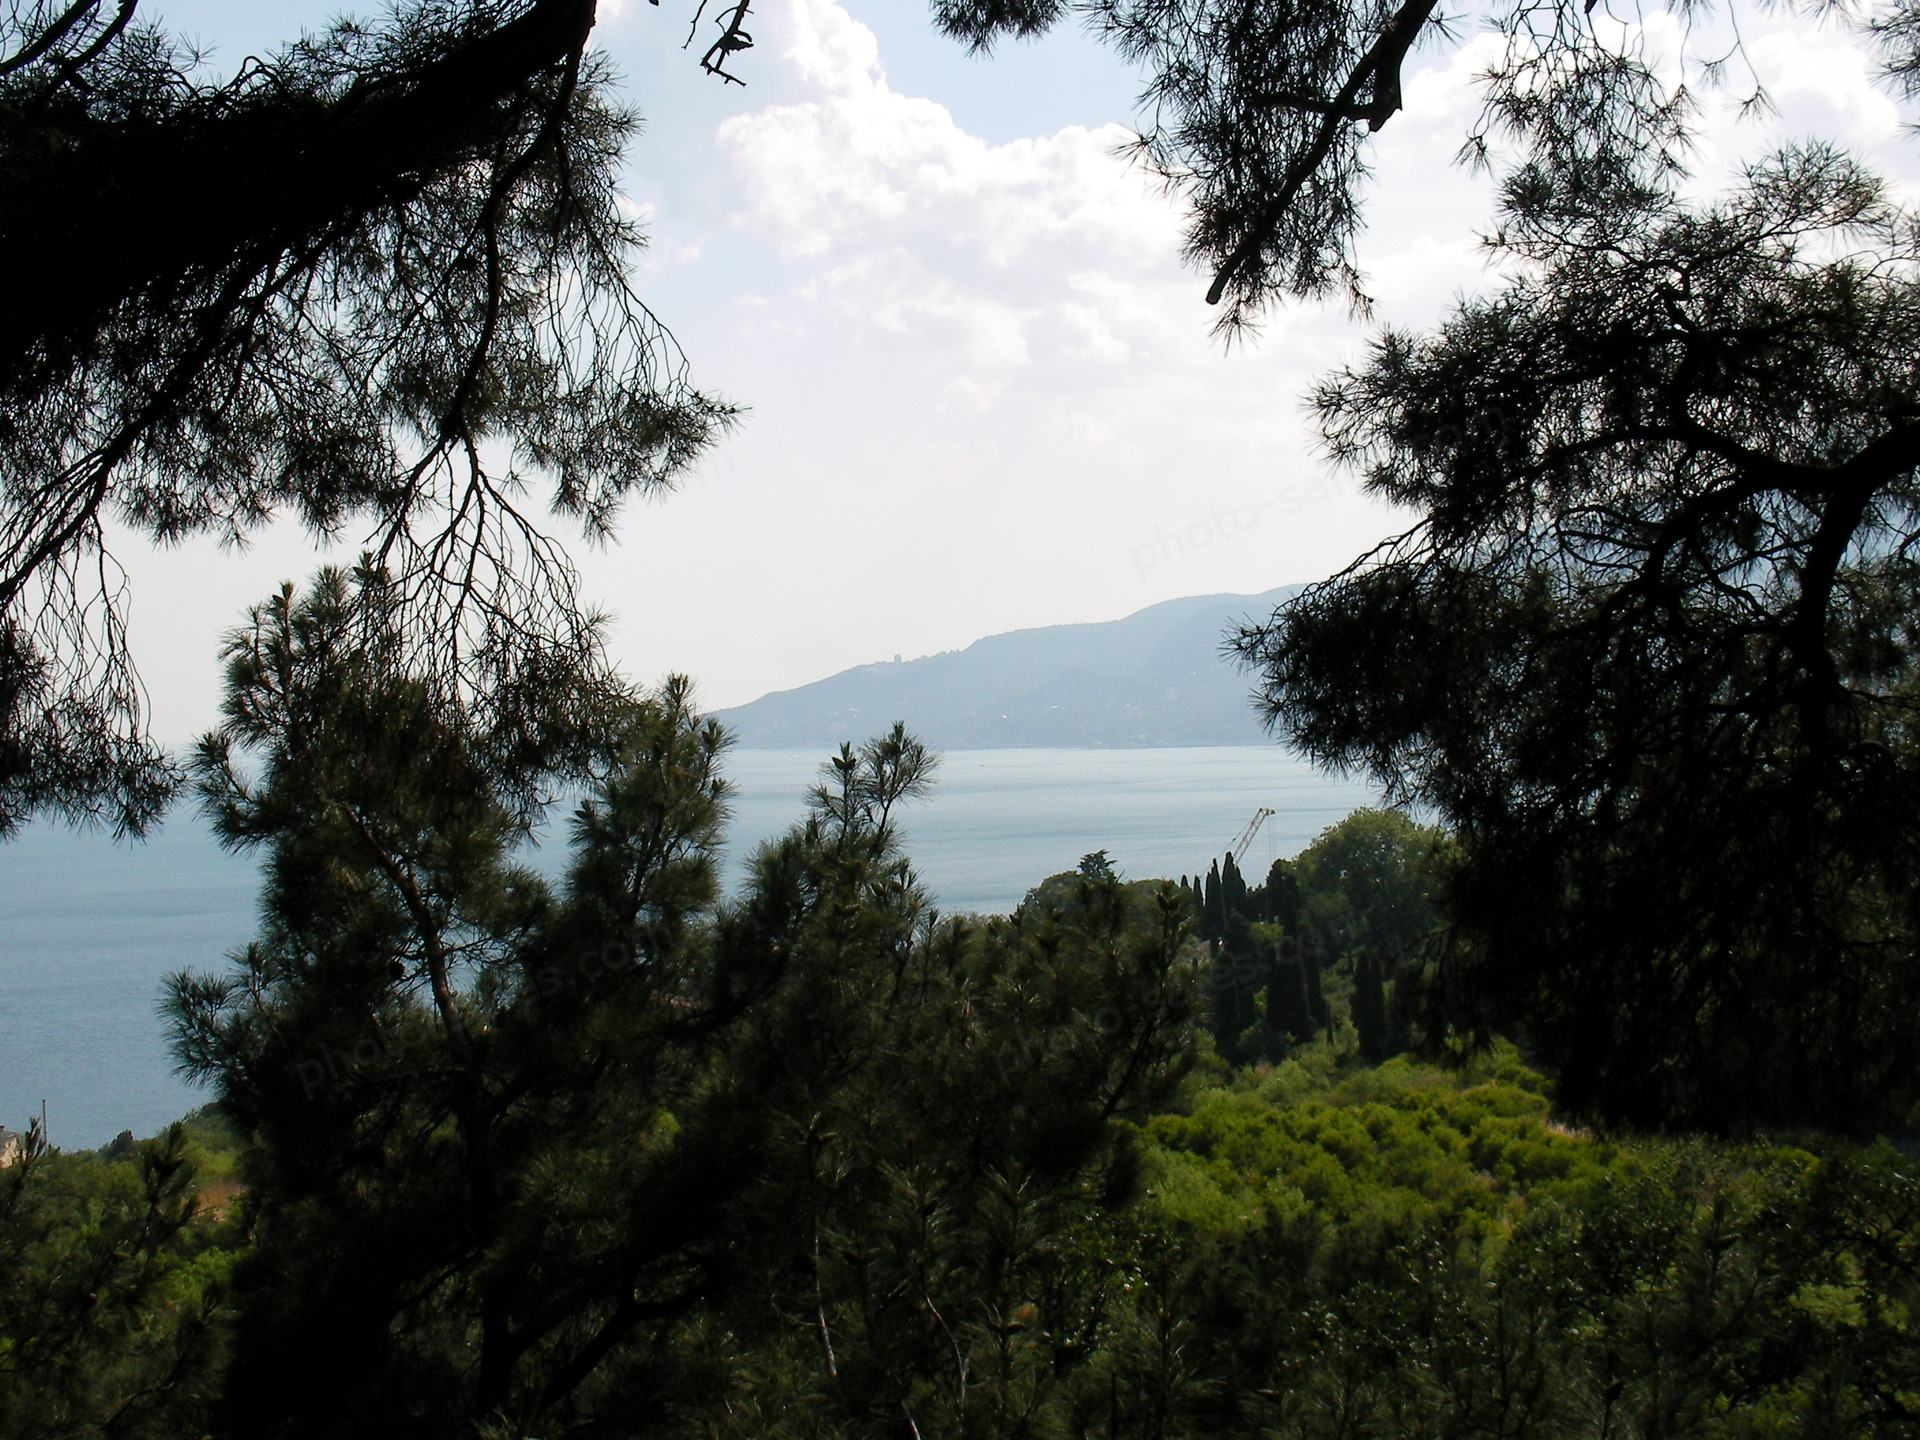 Sea and mountains under the sky through pine branches